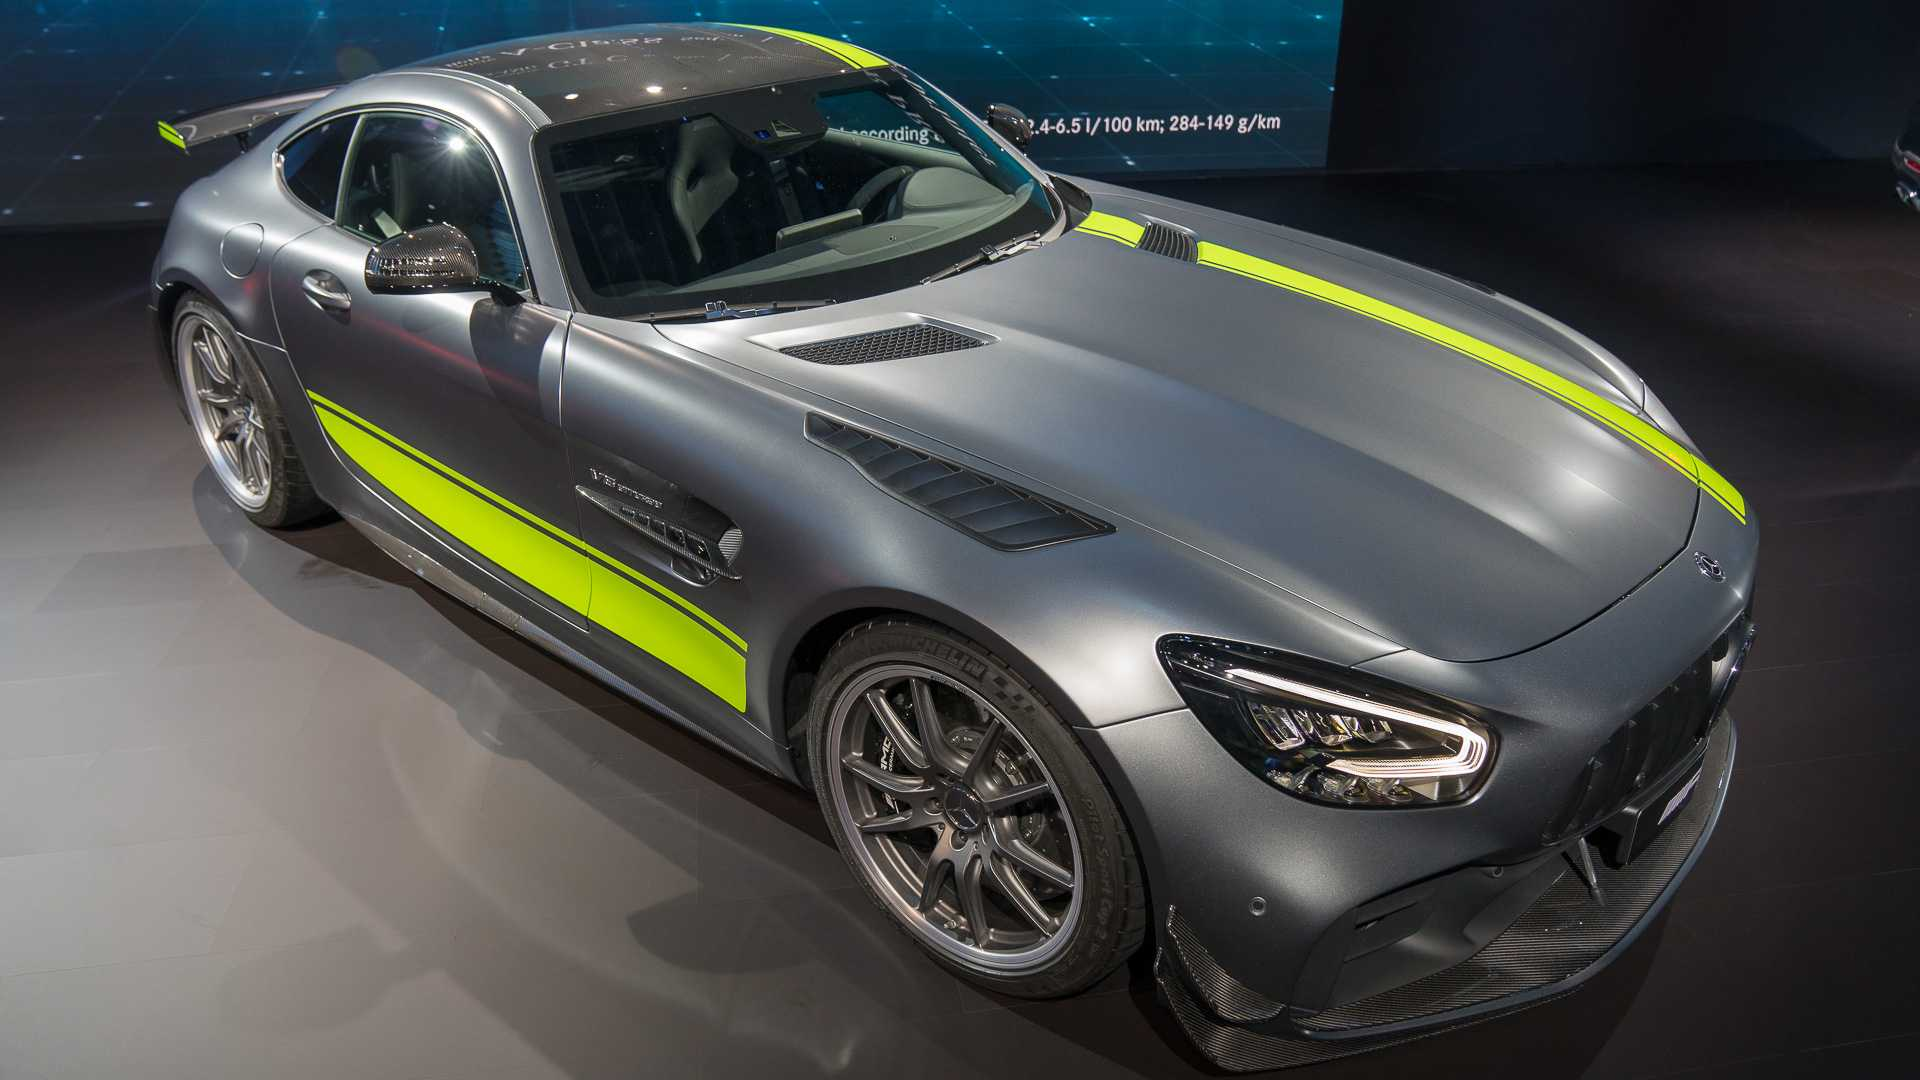 Mercedes Amg 2020 Mercedes Amg Gt Revealed With Tech And Styling Updates Update